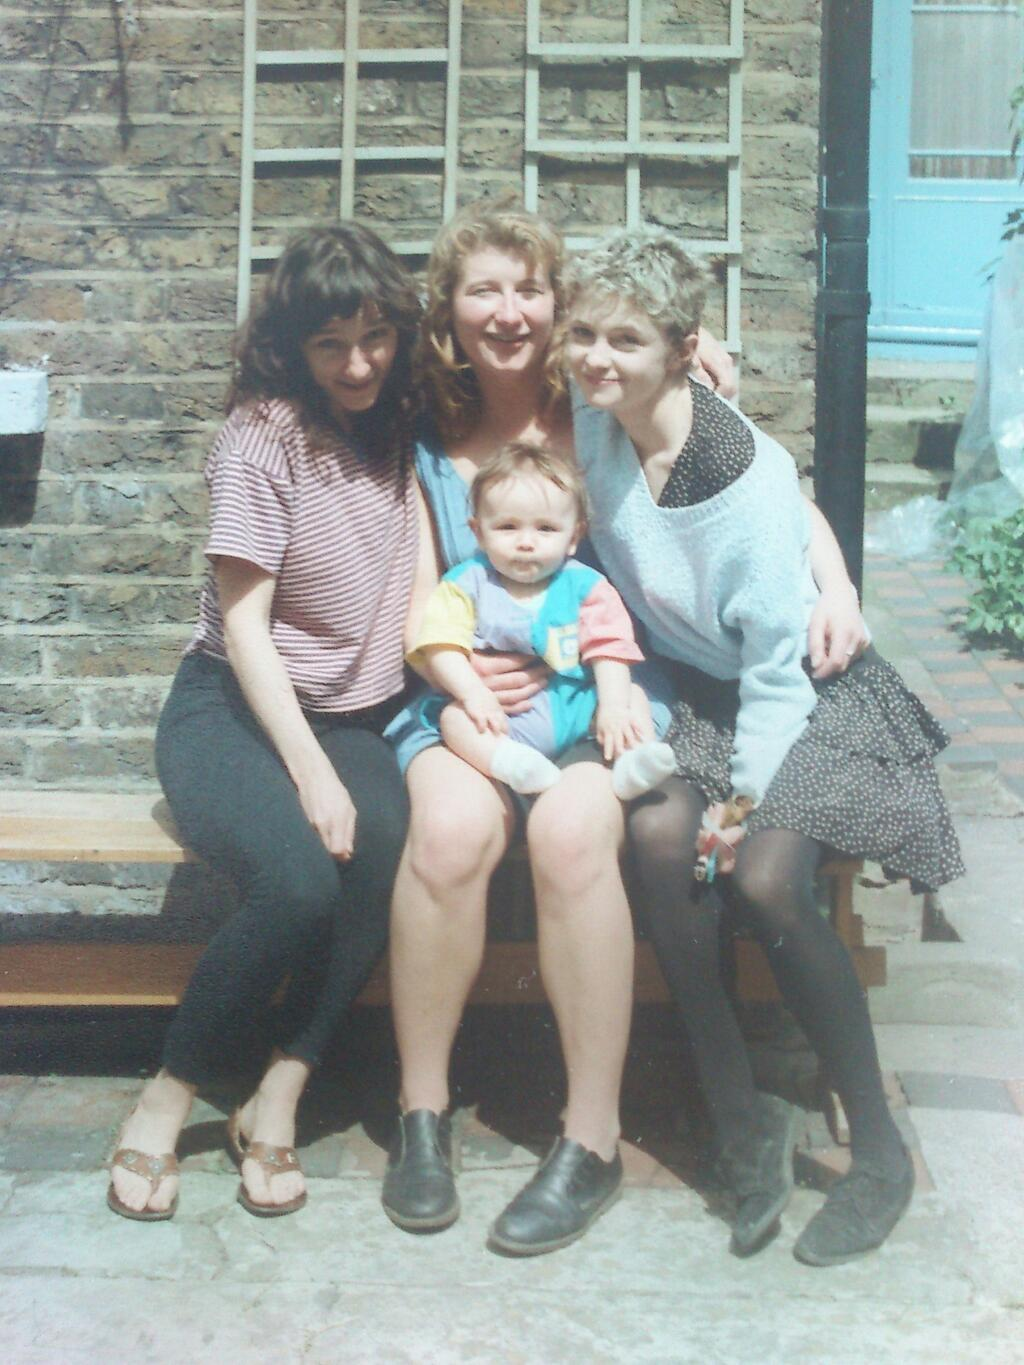 Nostalgia Photo Series (Photo #4) From left to right: Sarah, Sharon, Alison, little Max (North London, early 90's)